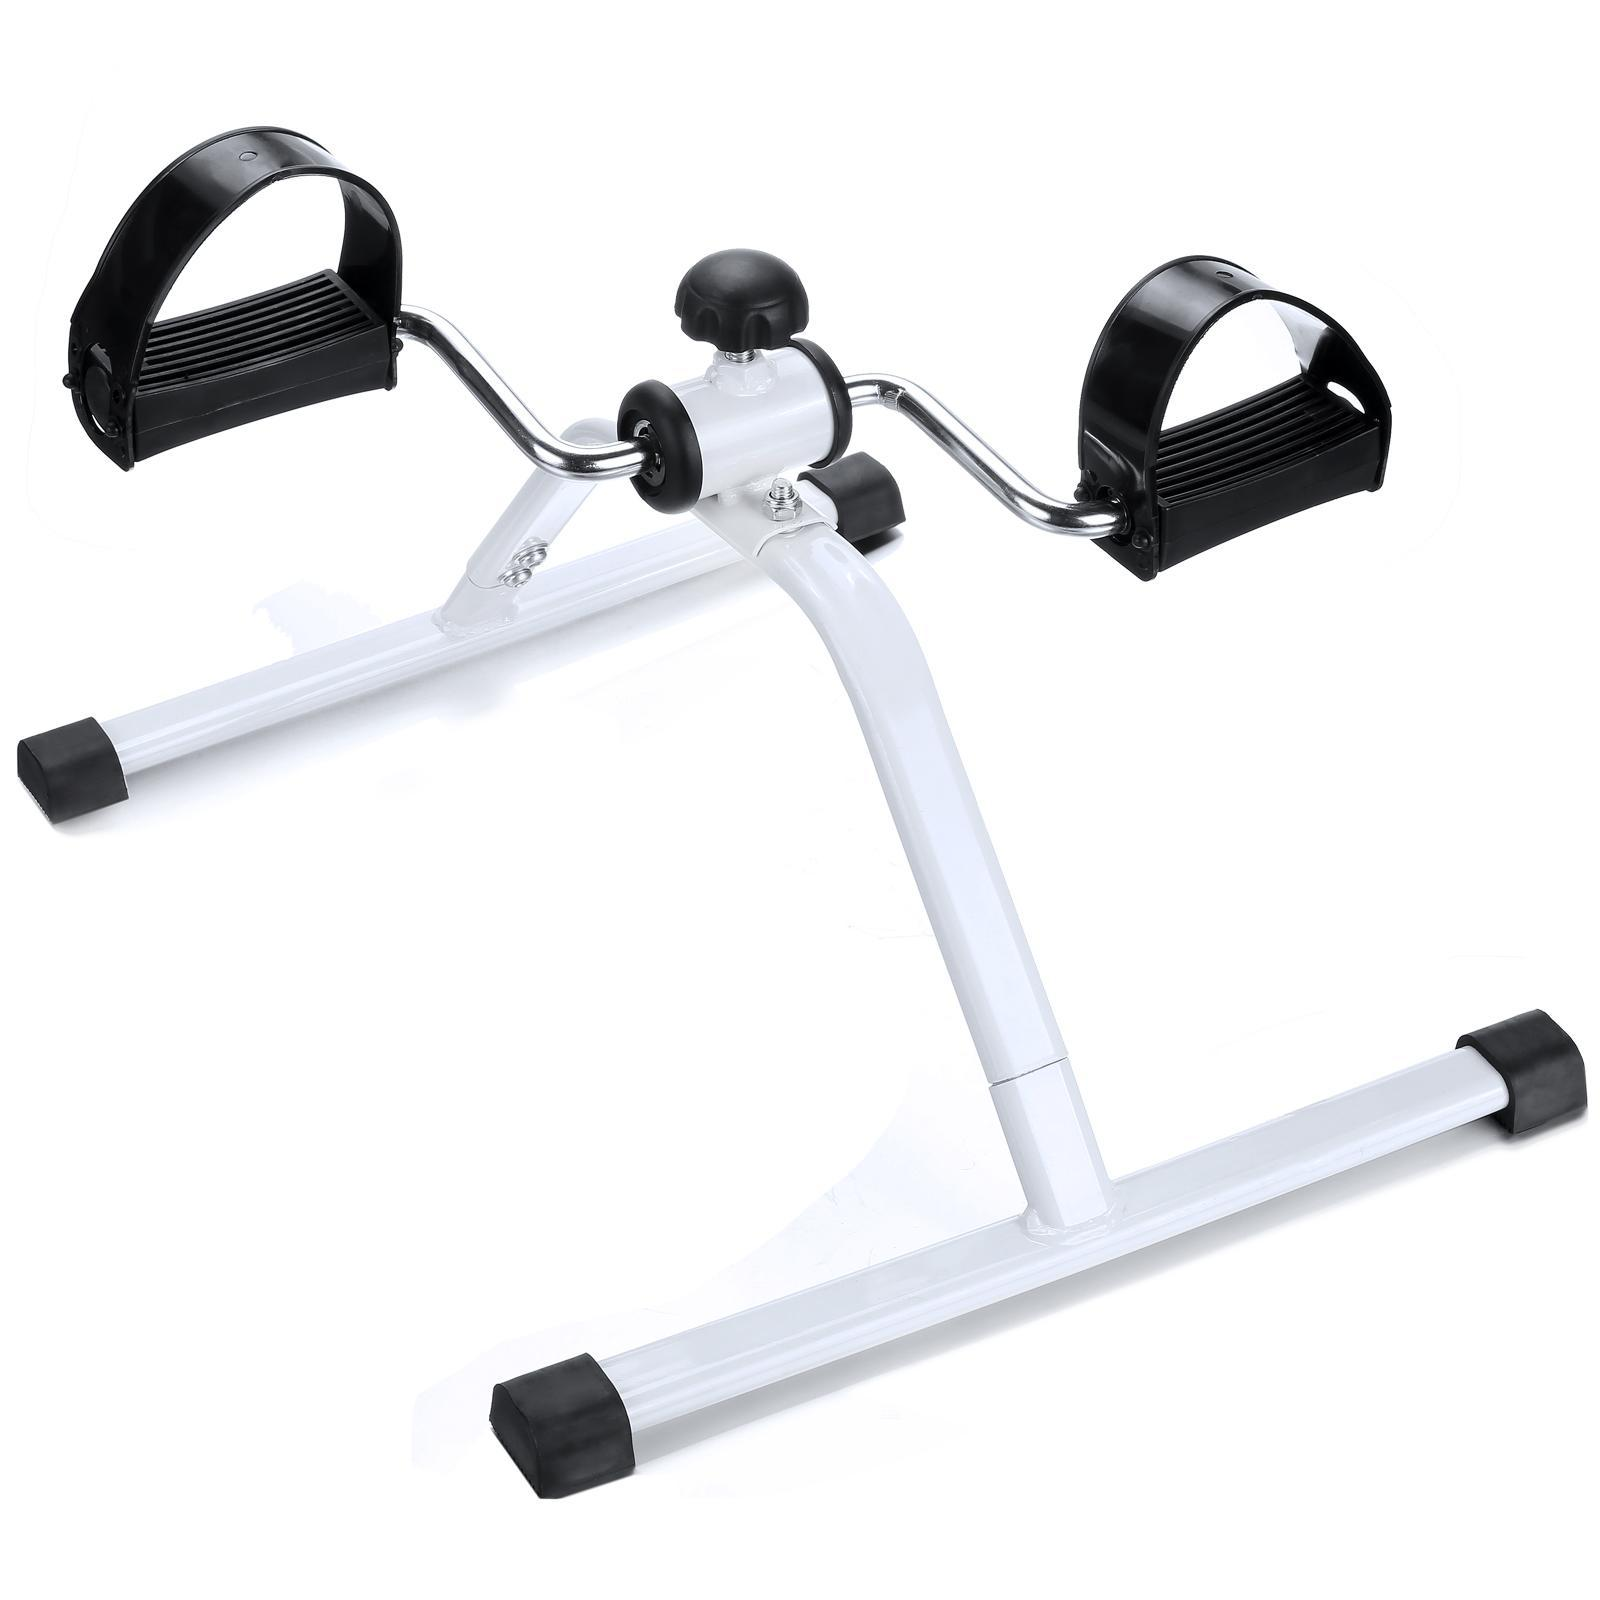 Leg Pedal Exerciser, Mini Exercise Bike Arm and Leg Exerciser- White